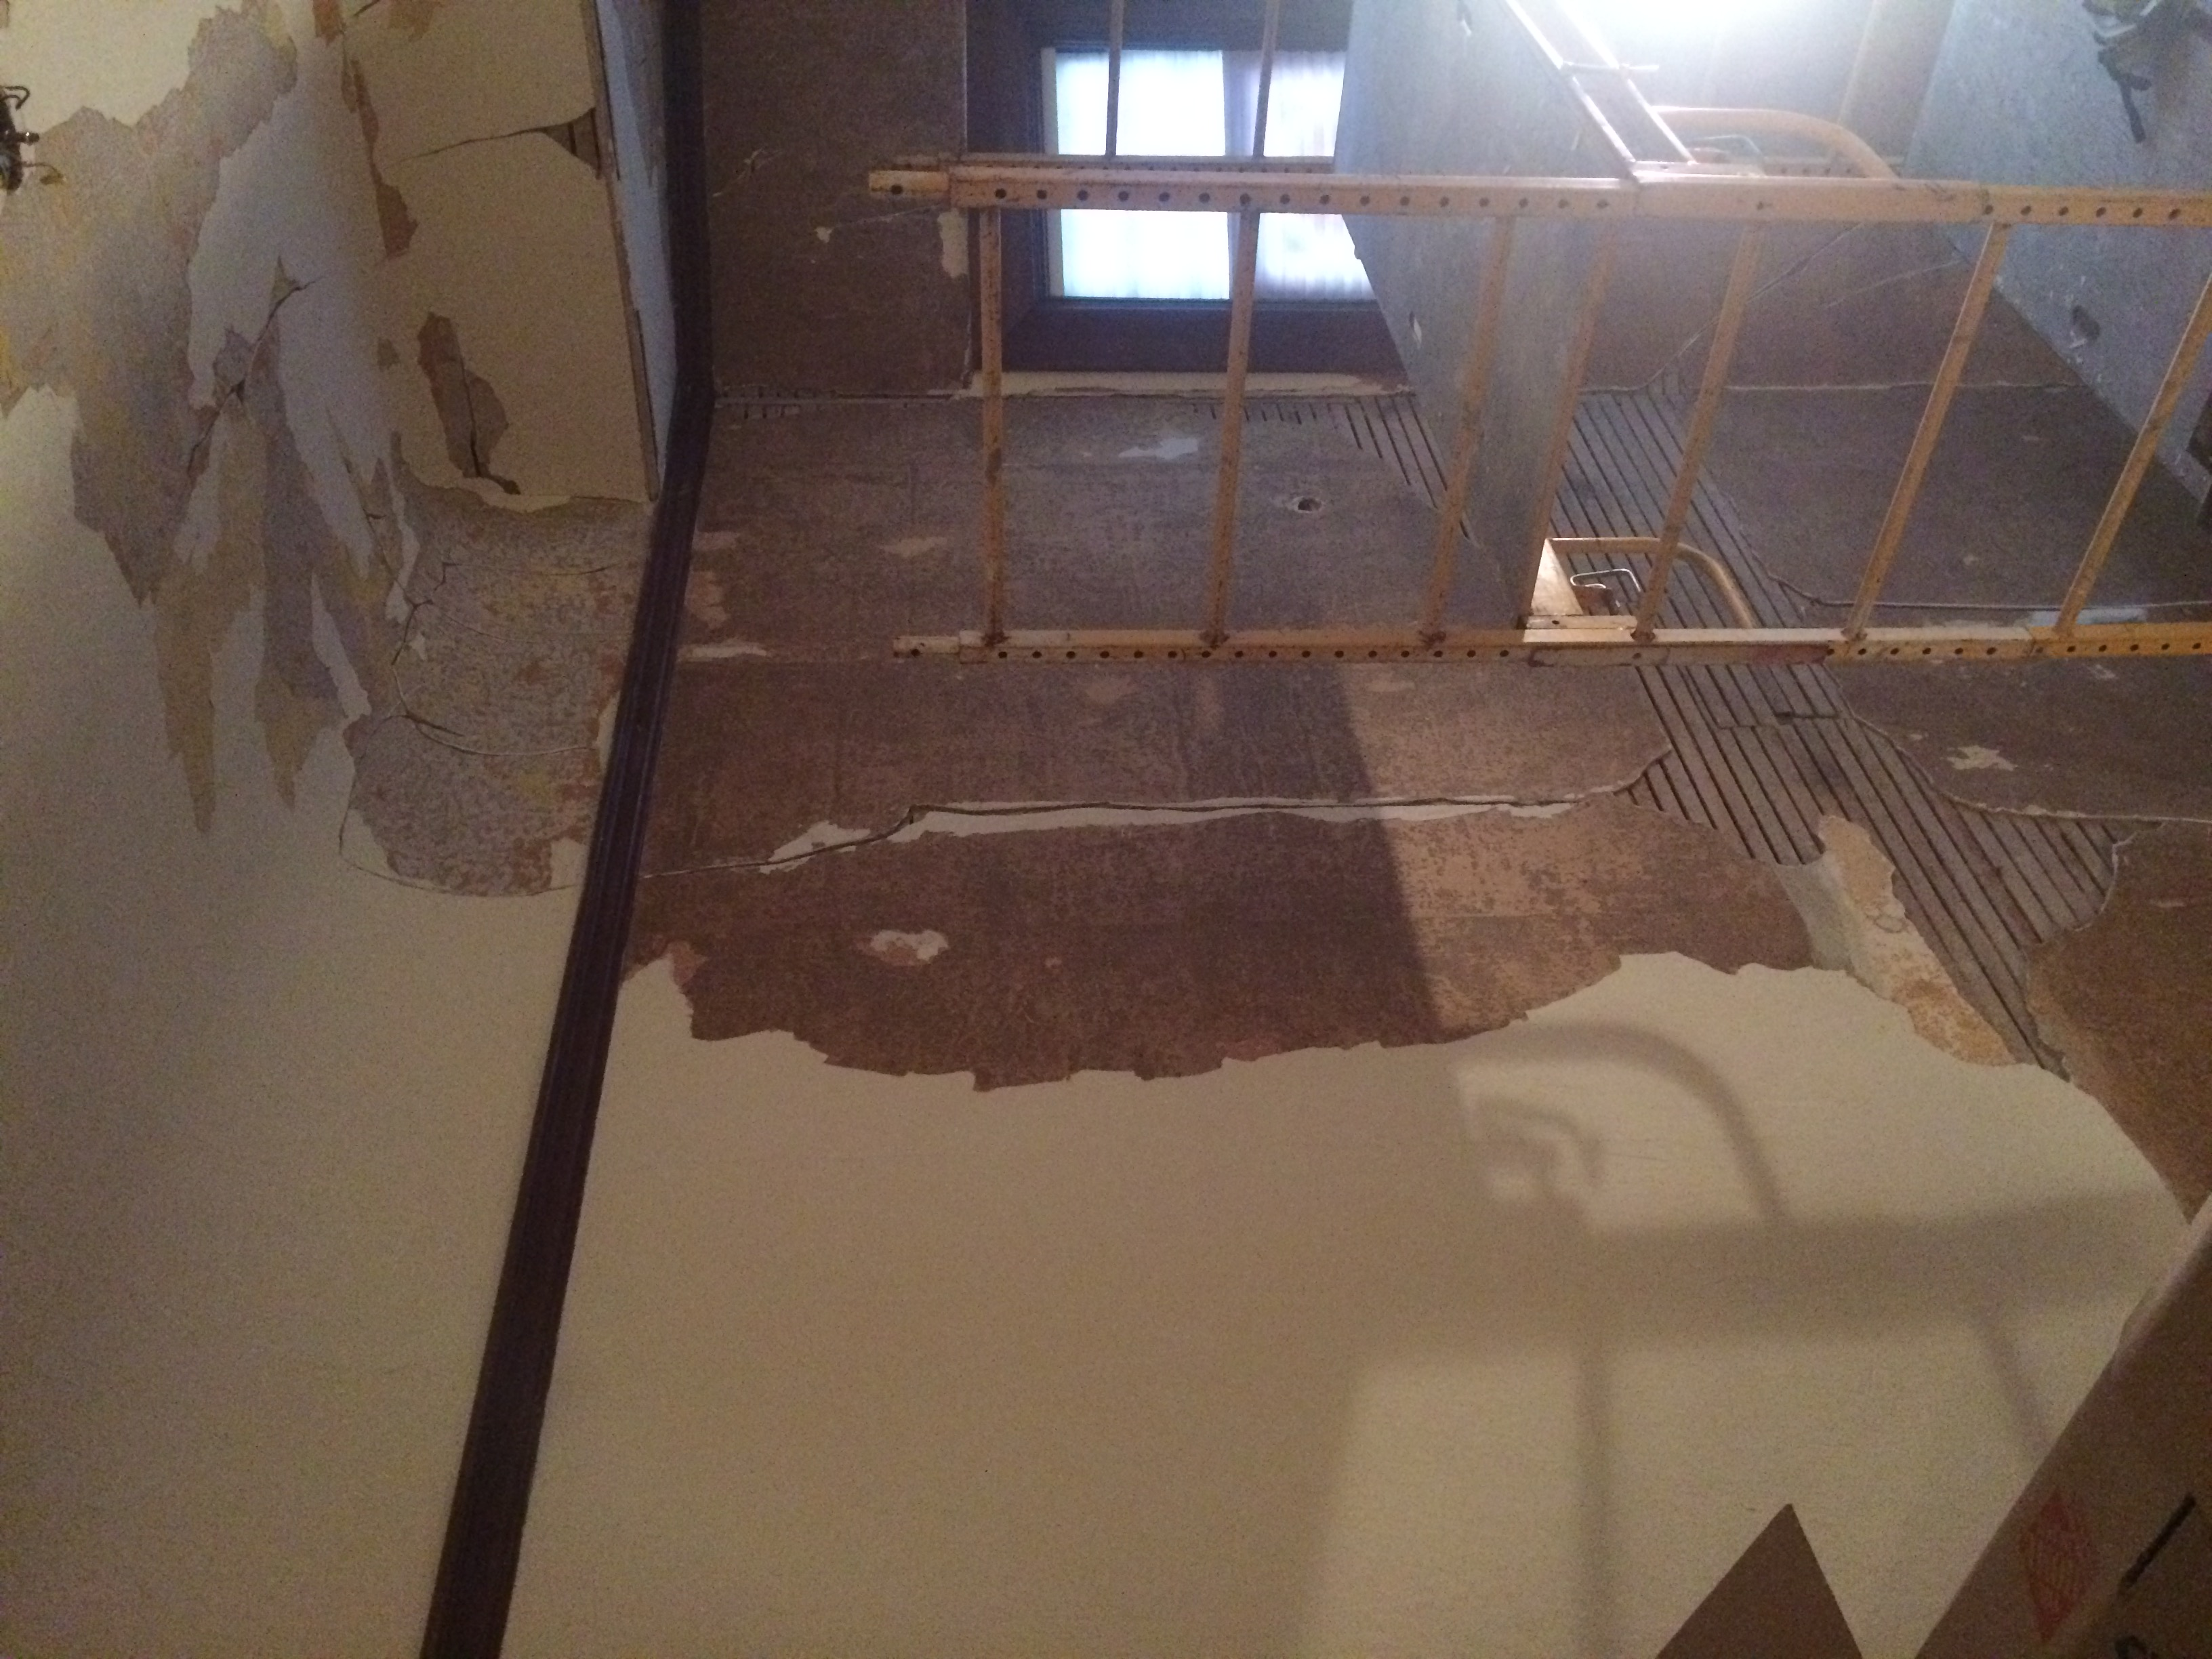 HELP! The entire skim on wallpaper fell off - 100 year old plaster-img_6319.jpg